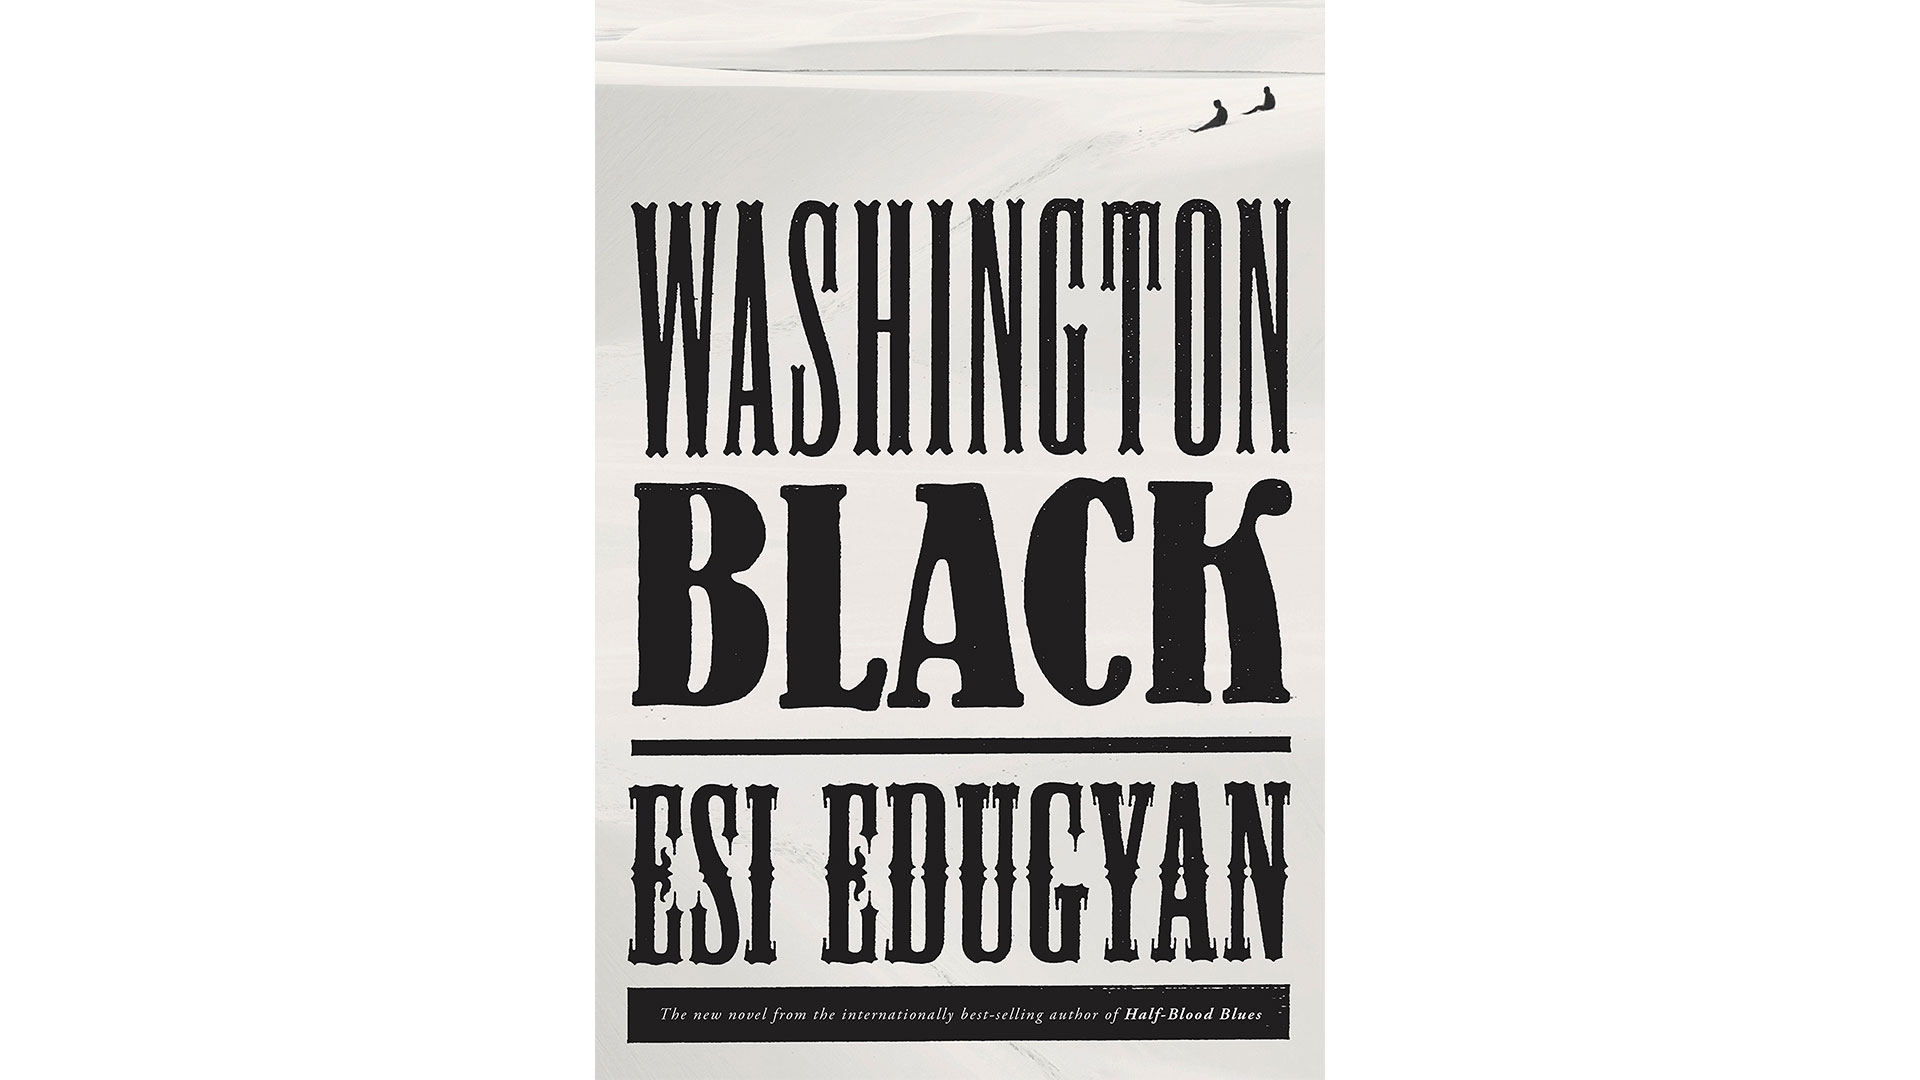 Amazon Best Books 2018 Washington Black